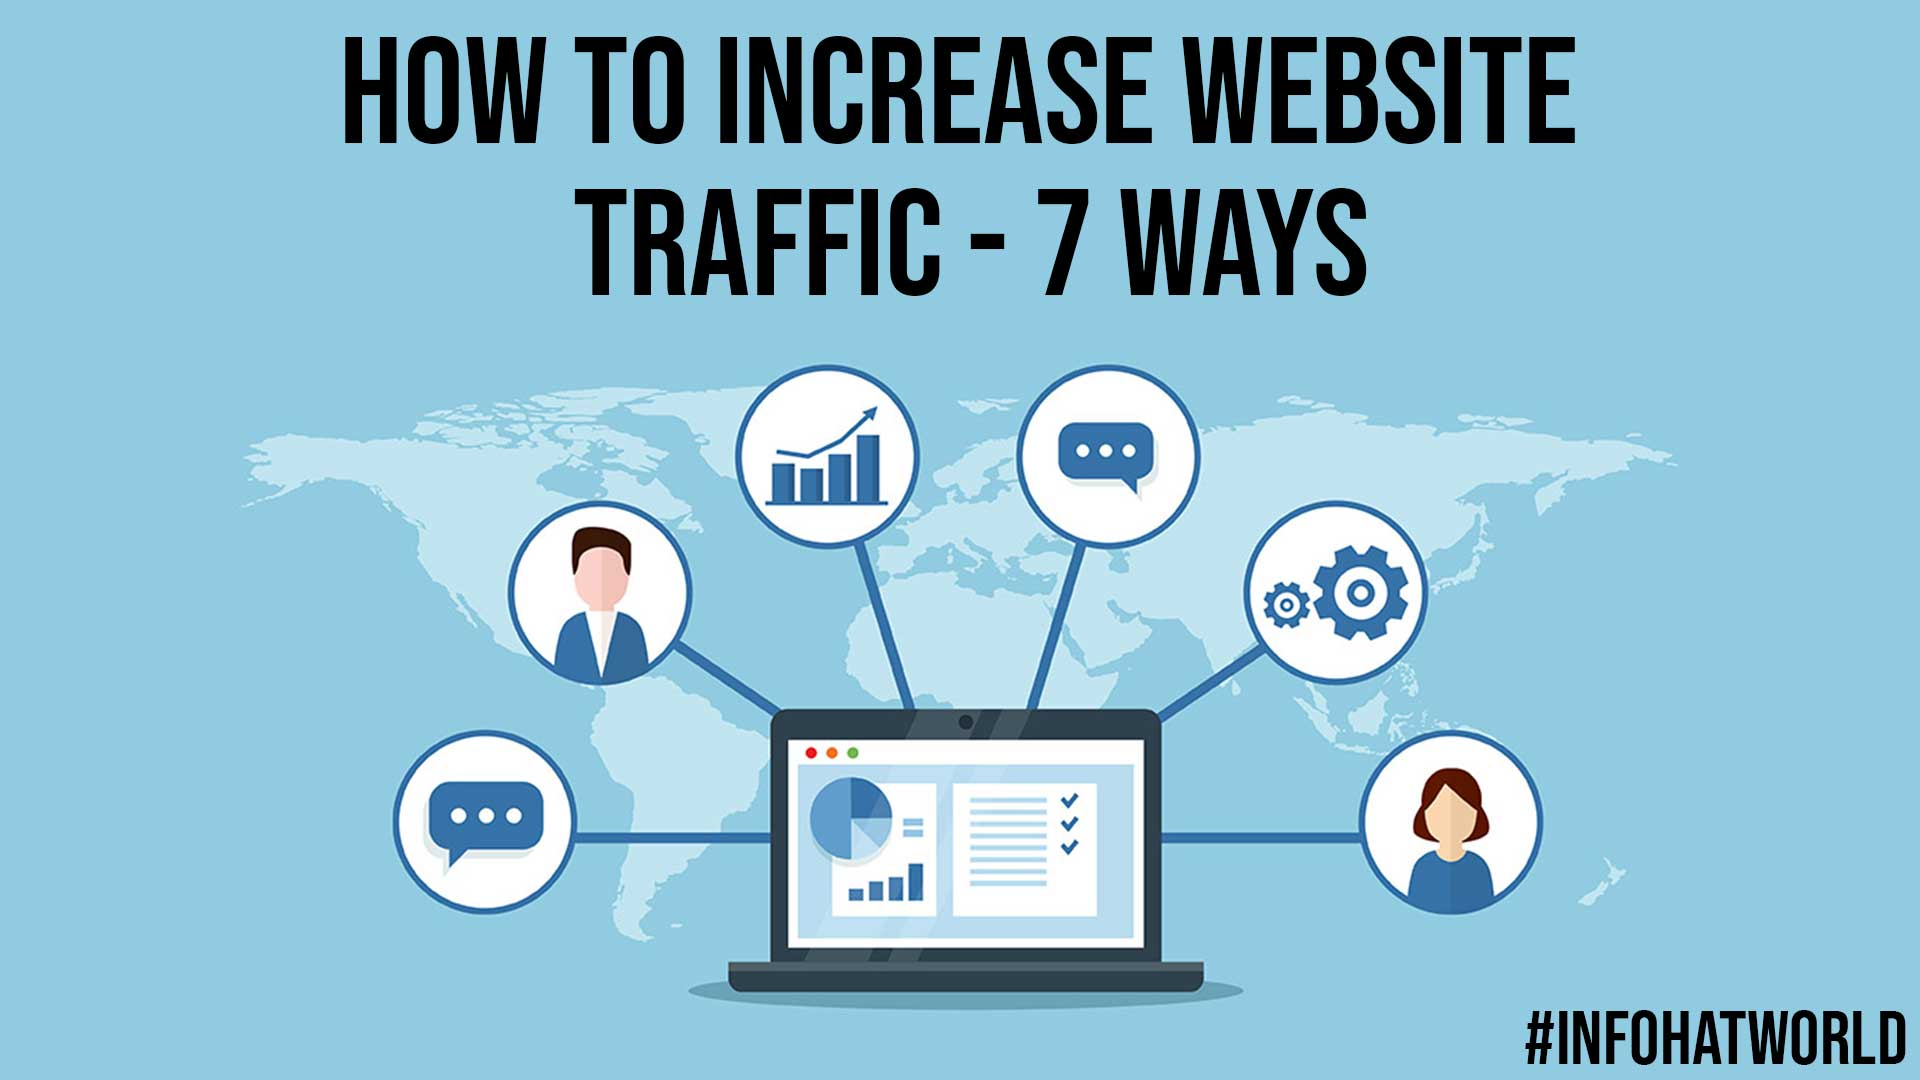 How to Increase Website Traffic 7 Ways